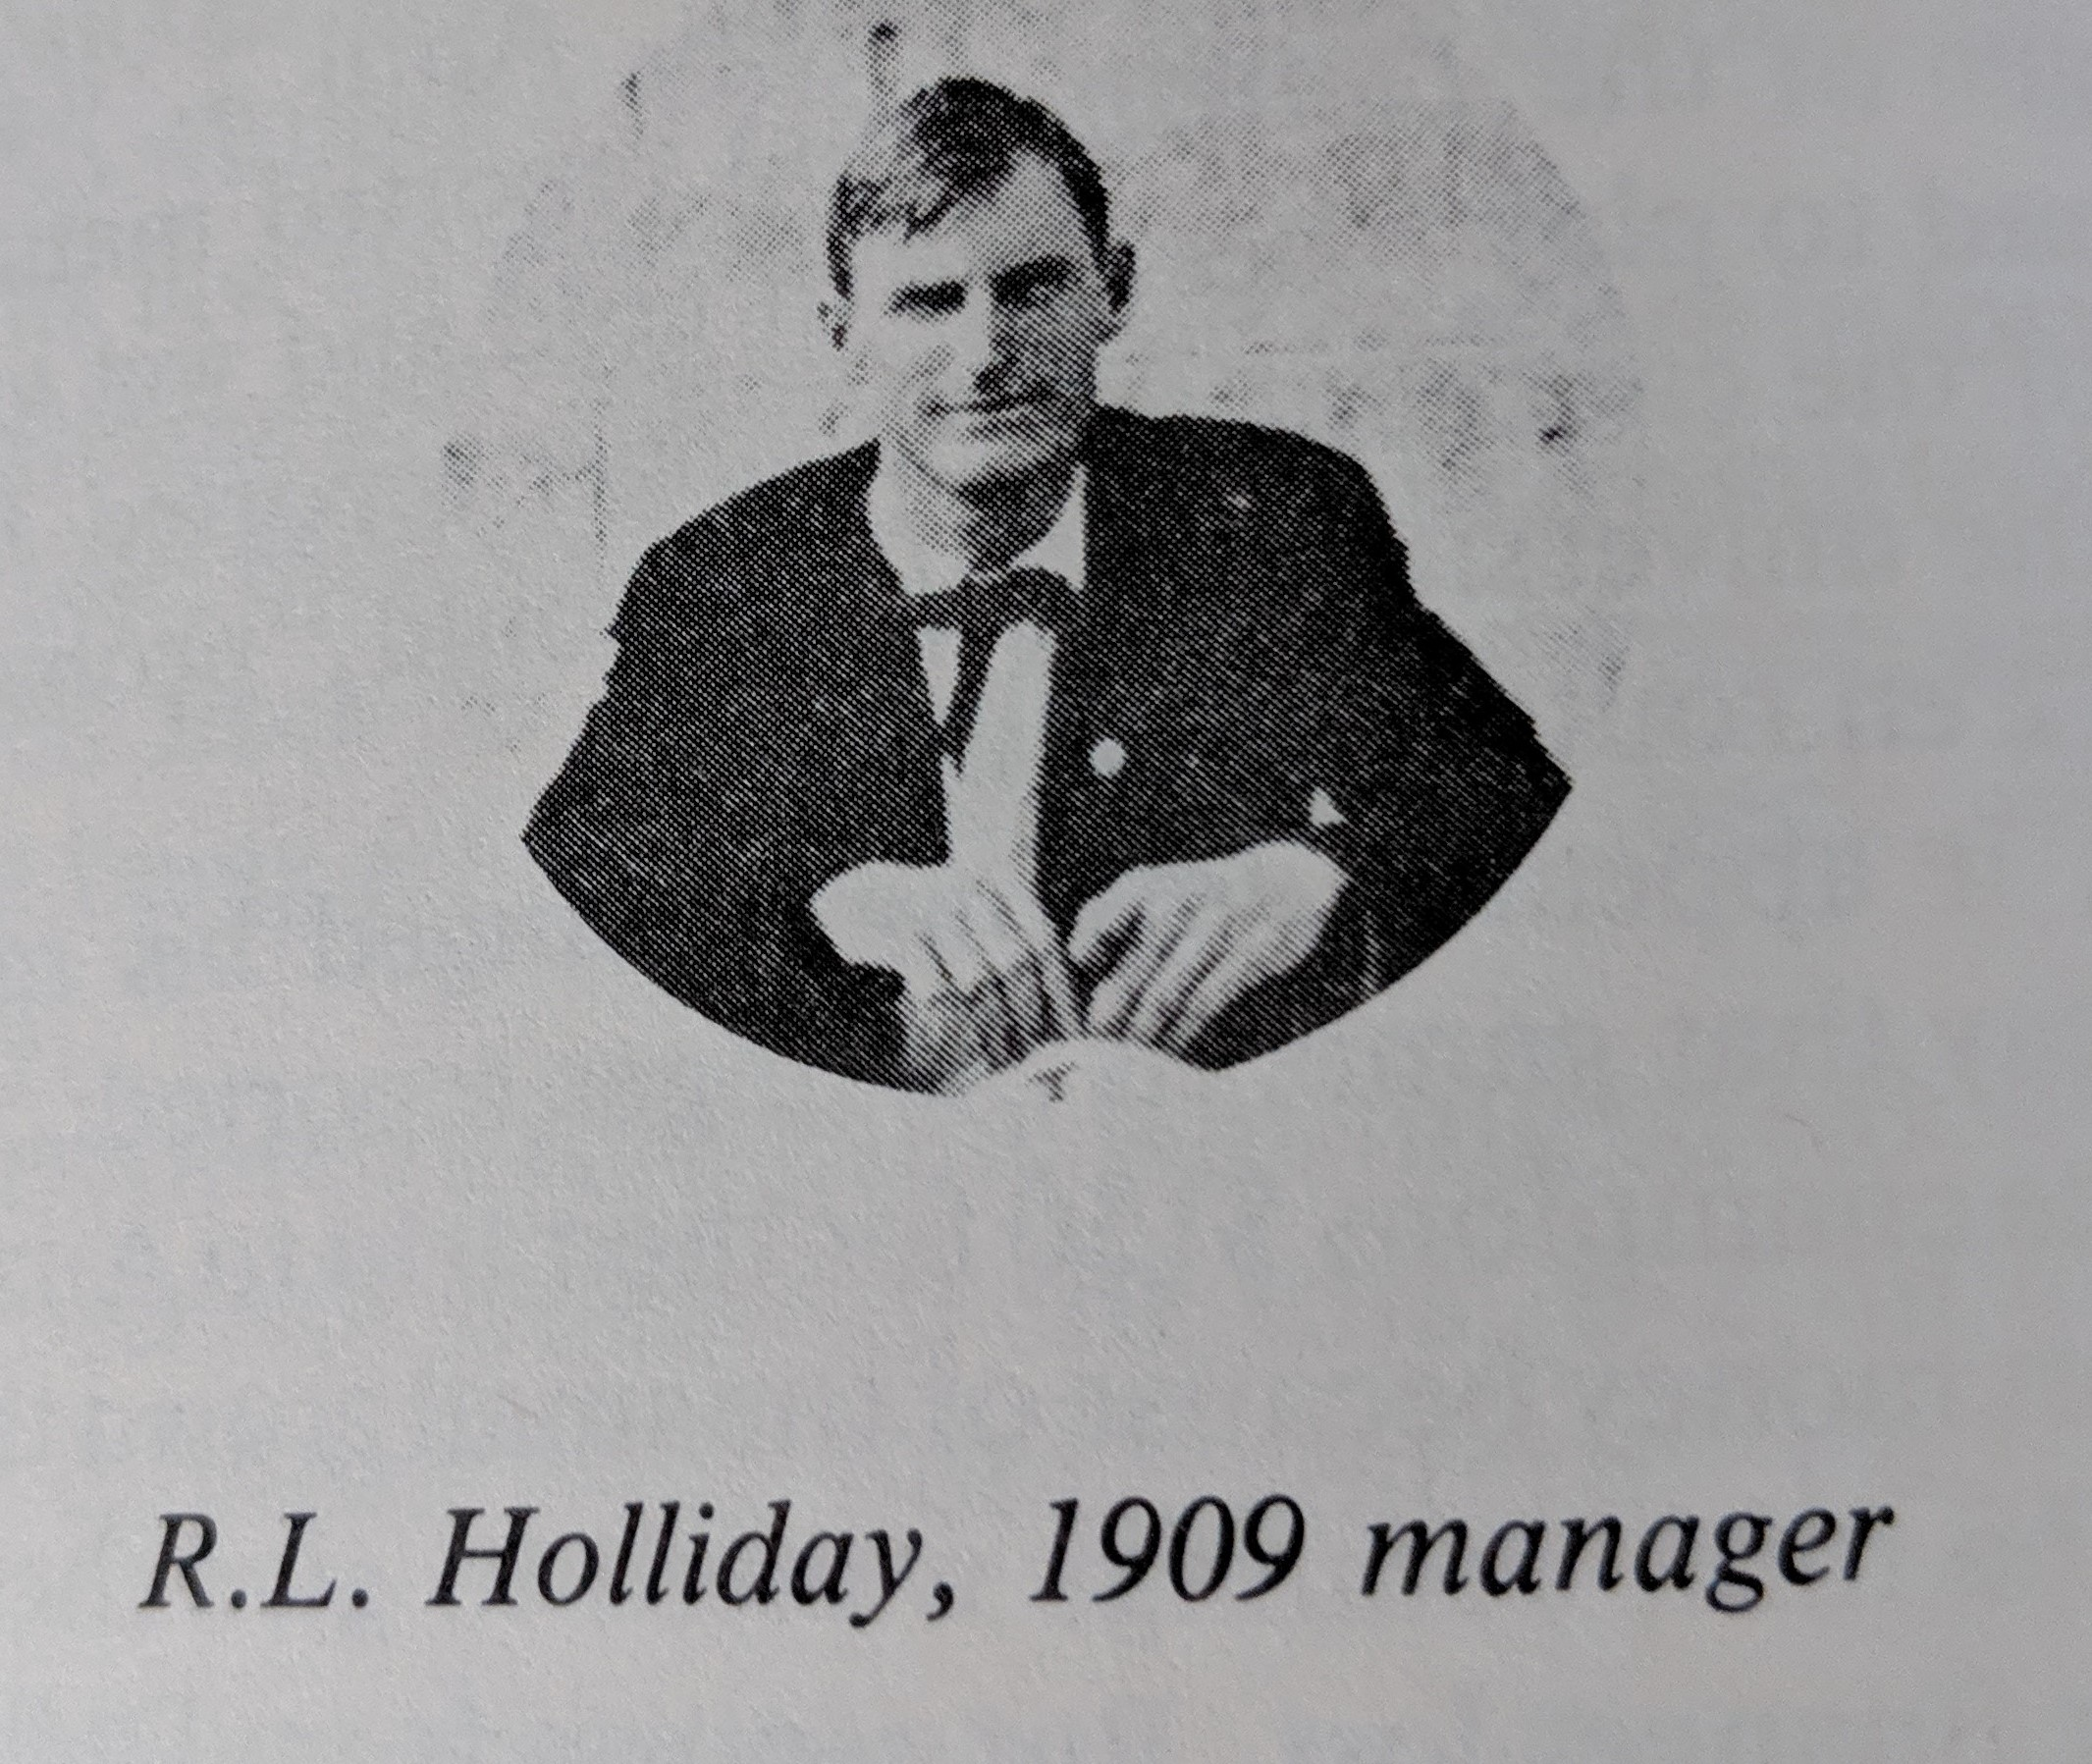 1909 R.L.Holliday manager.jpg